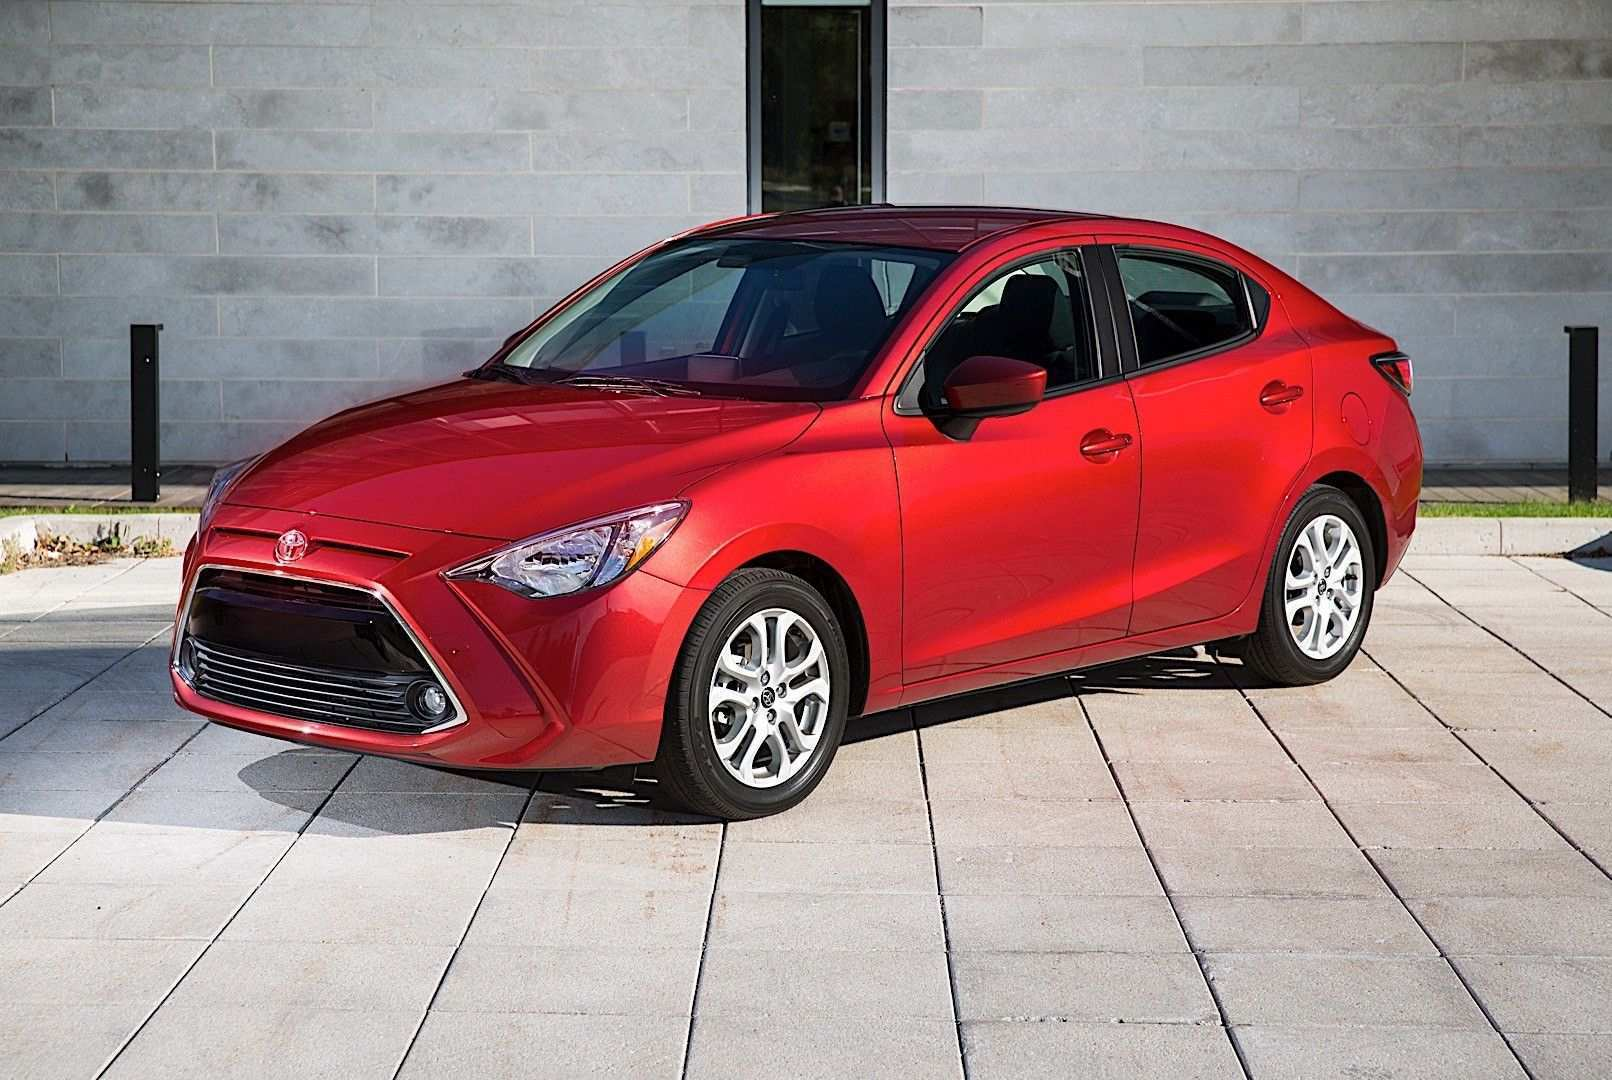 57 Best Review Toyota Ia 2020 Exterior and Interior for Toyota Ia 2020